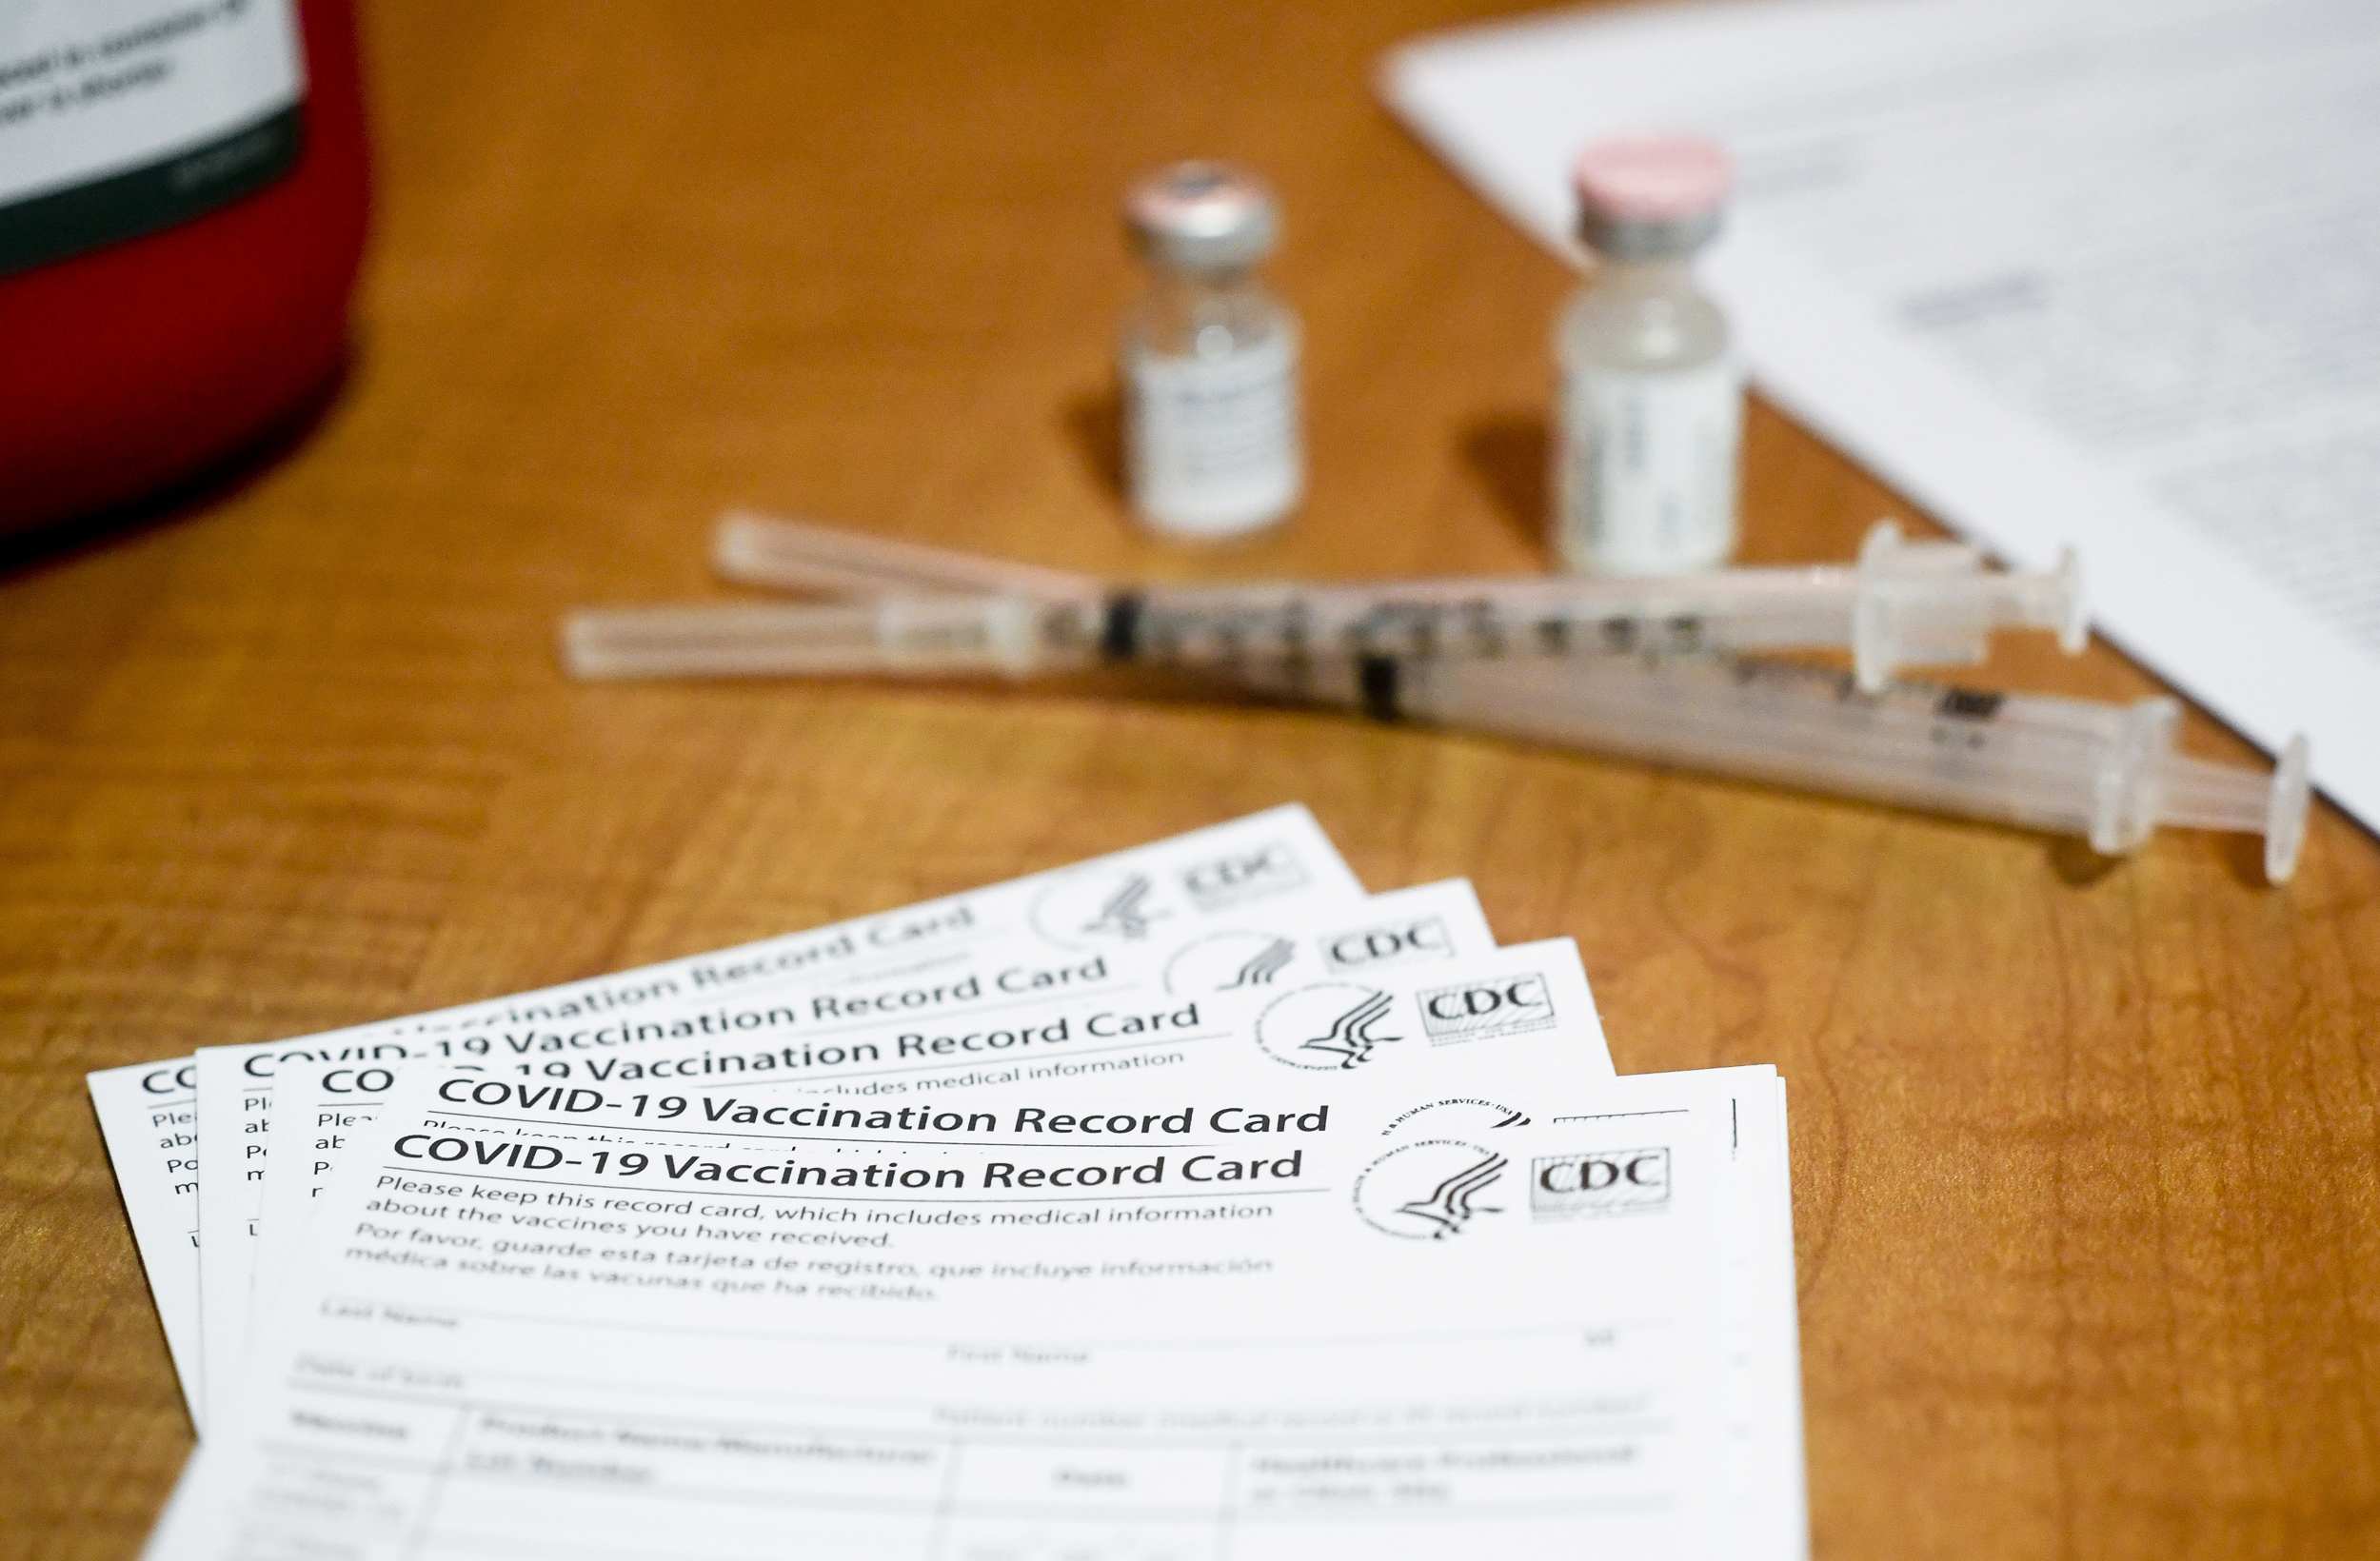 U.S. government intercepts reams of fake vaccination cards from China